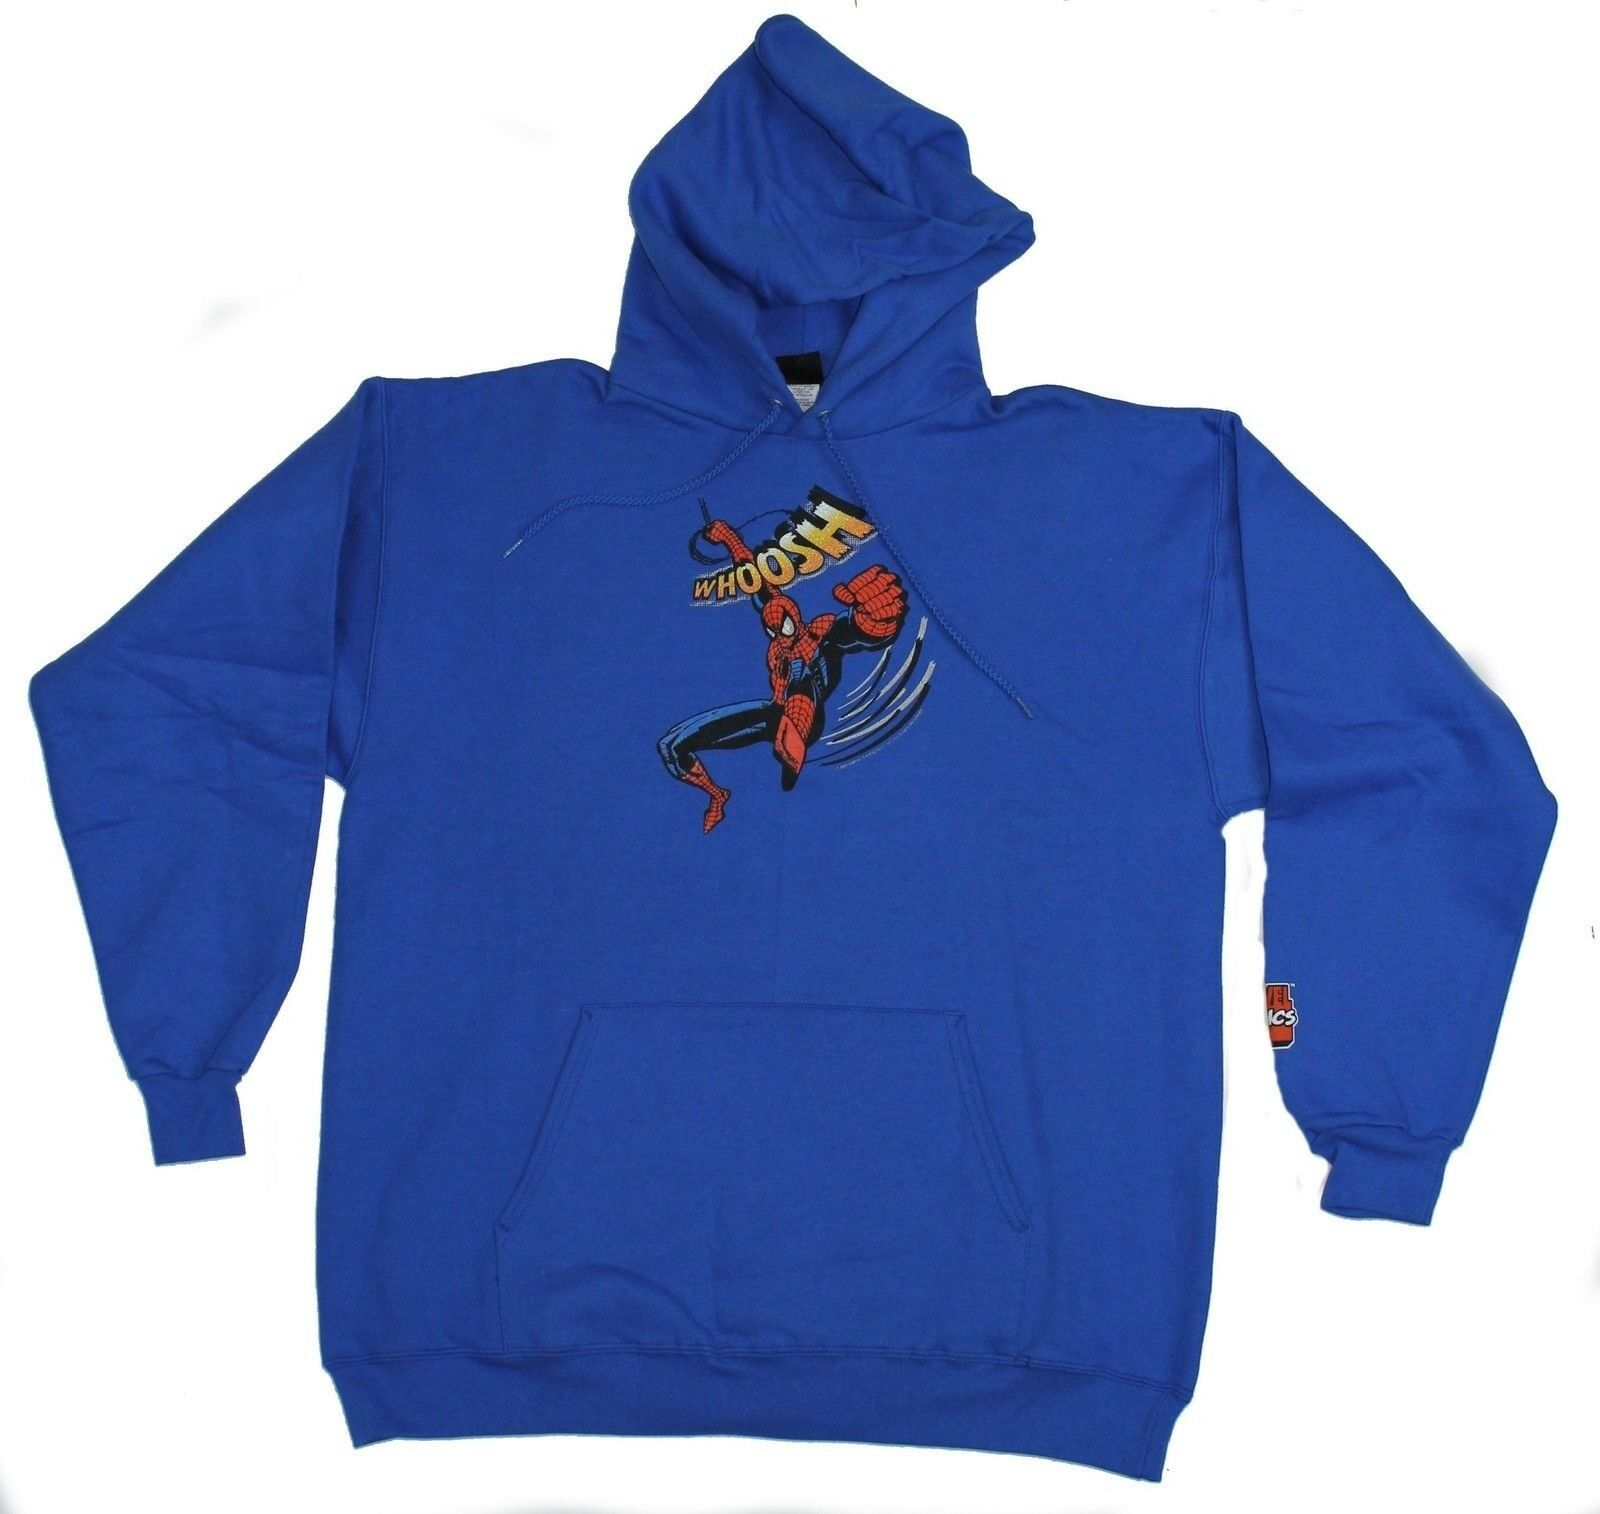 Spider-Man (Marvel Comics) Pullover Hoodie - Whoosh Swinging Punch Image